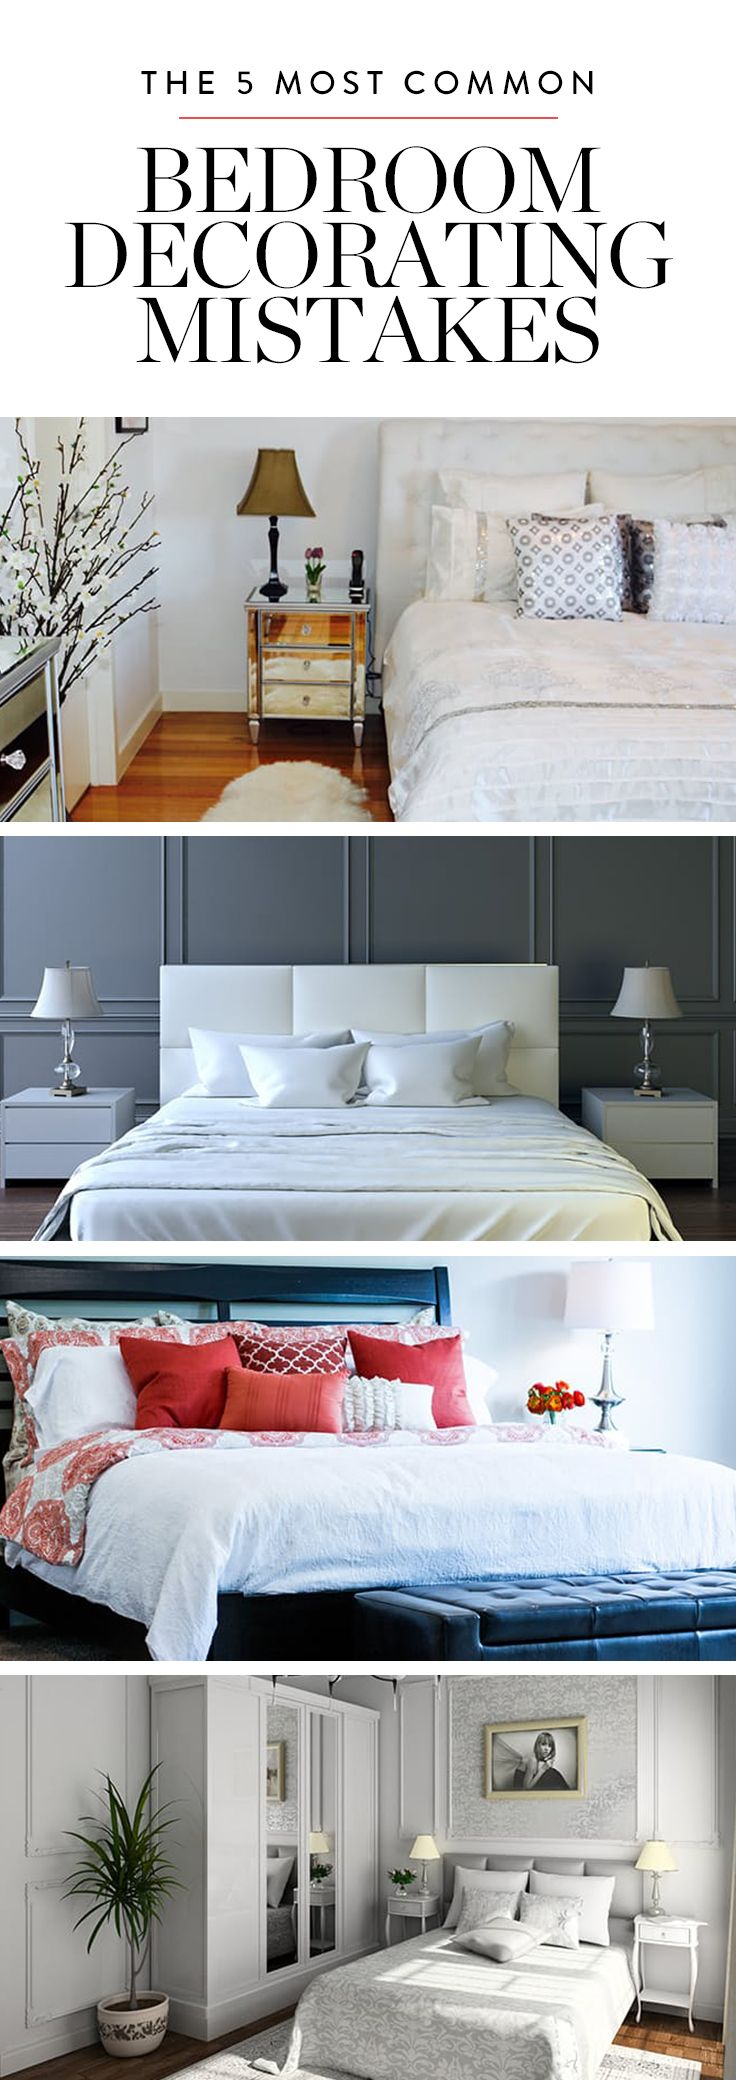 Bedding jardin collection bedding collections bed amp bath macy s - The 5 Most Common Bedroom Decorating Mistakes Via Purewow Via Purewow